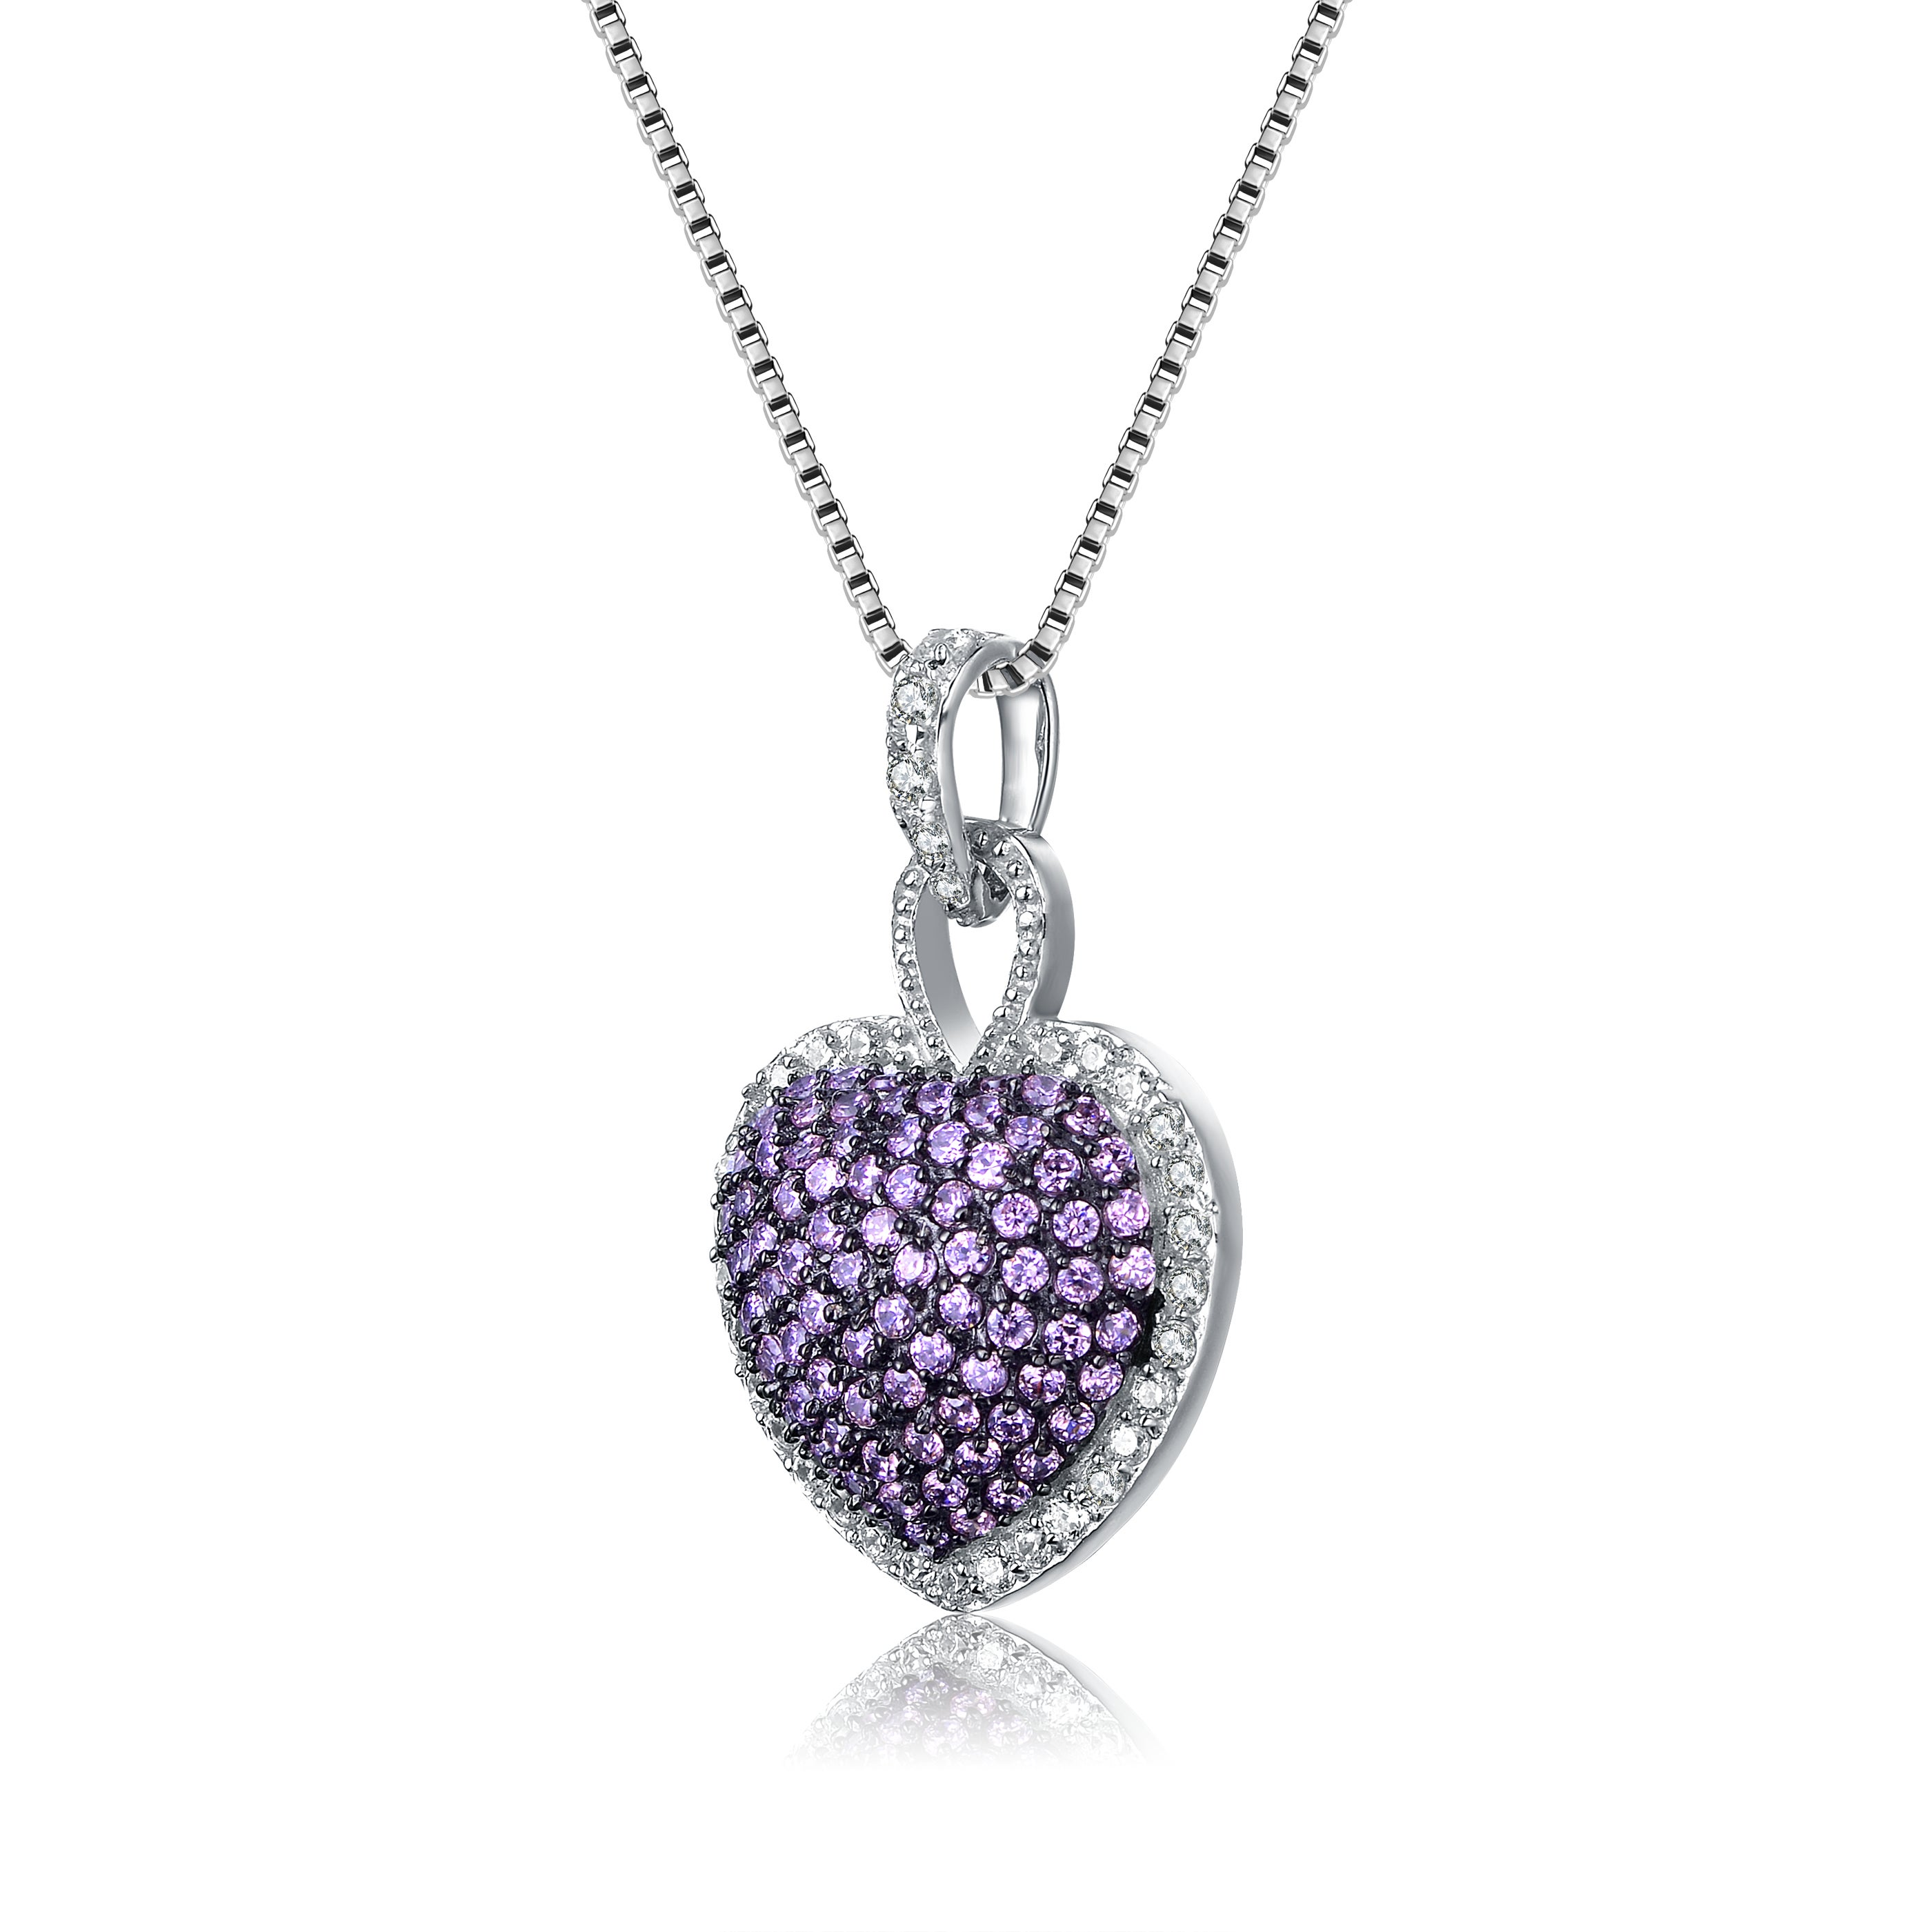 tiffany wid tag hei fit with to return jewelry fmt purple id charm ed enamel necklaces in pendants constrain necklace m sterling g silver heart